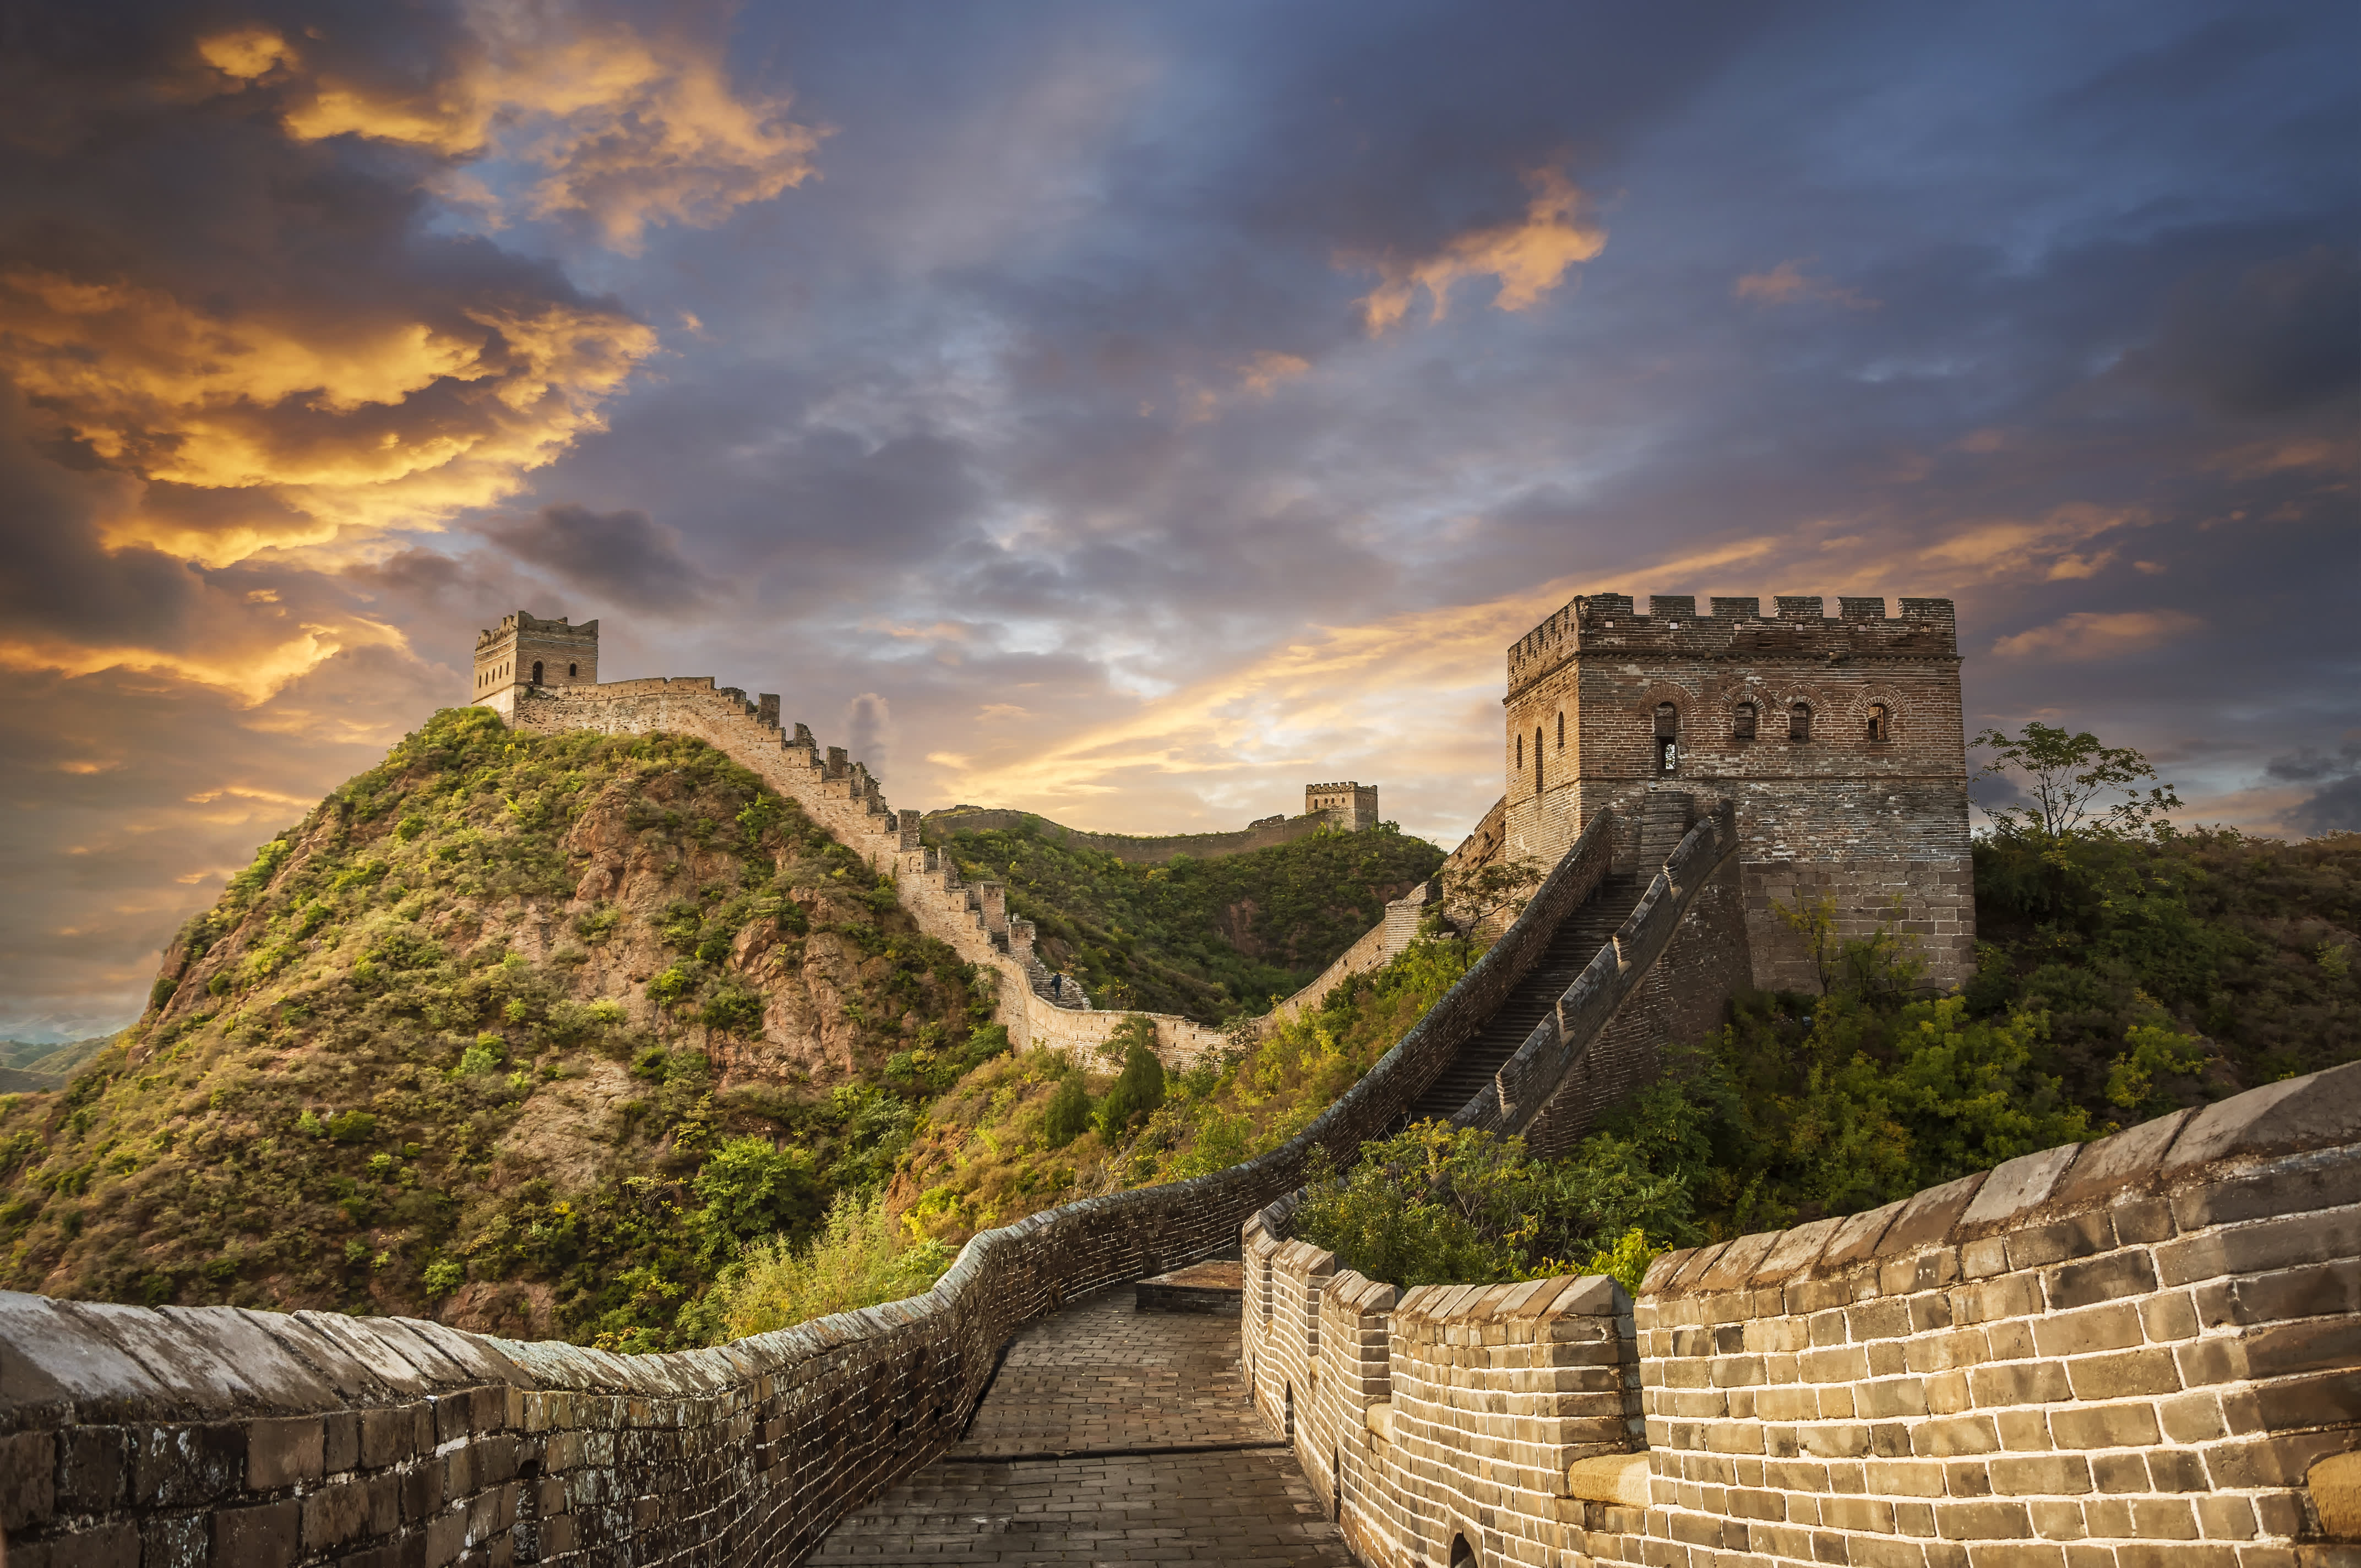 Touring the Great Wall of China: Day trip ideas